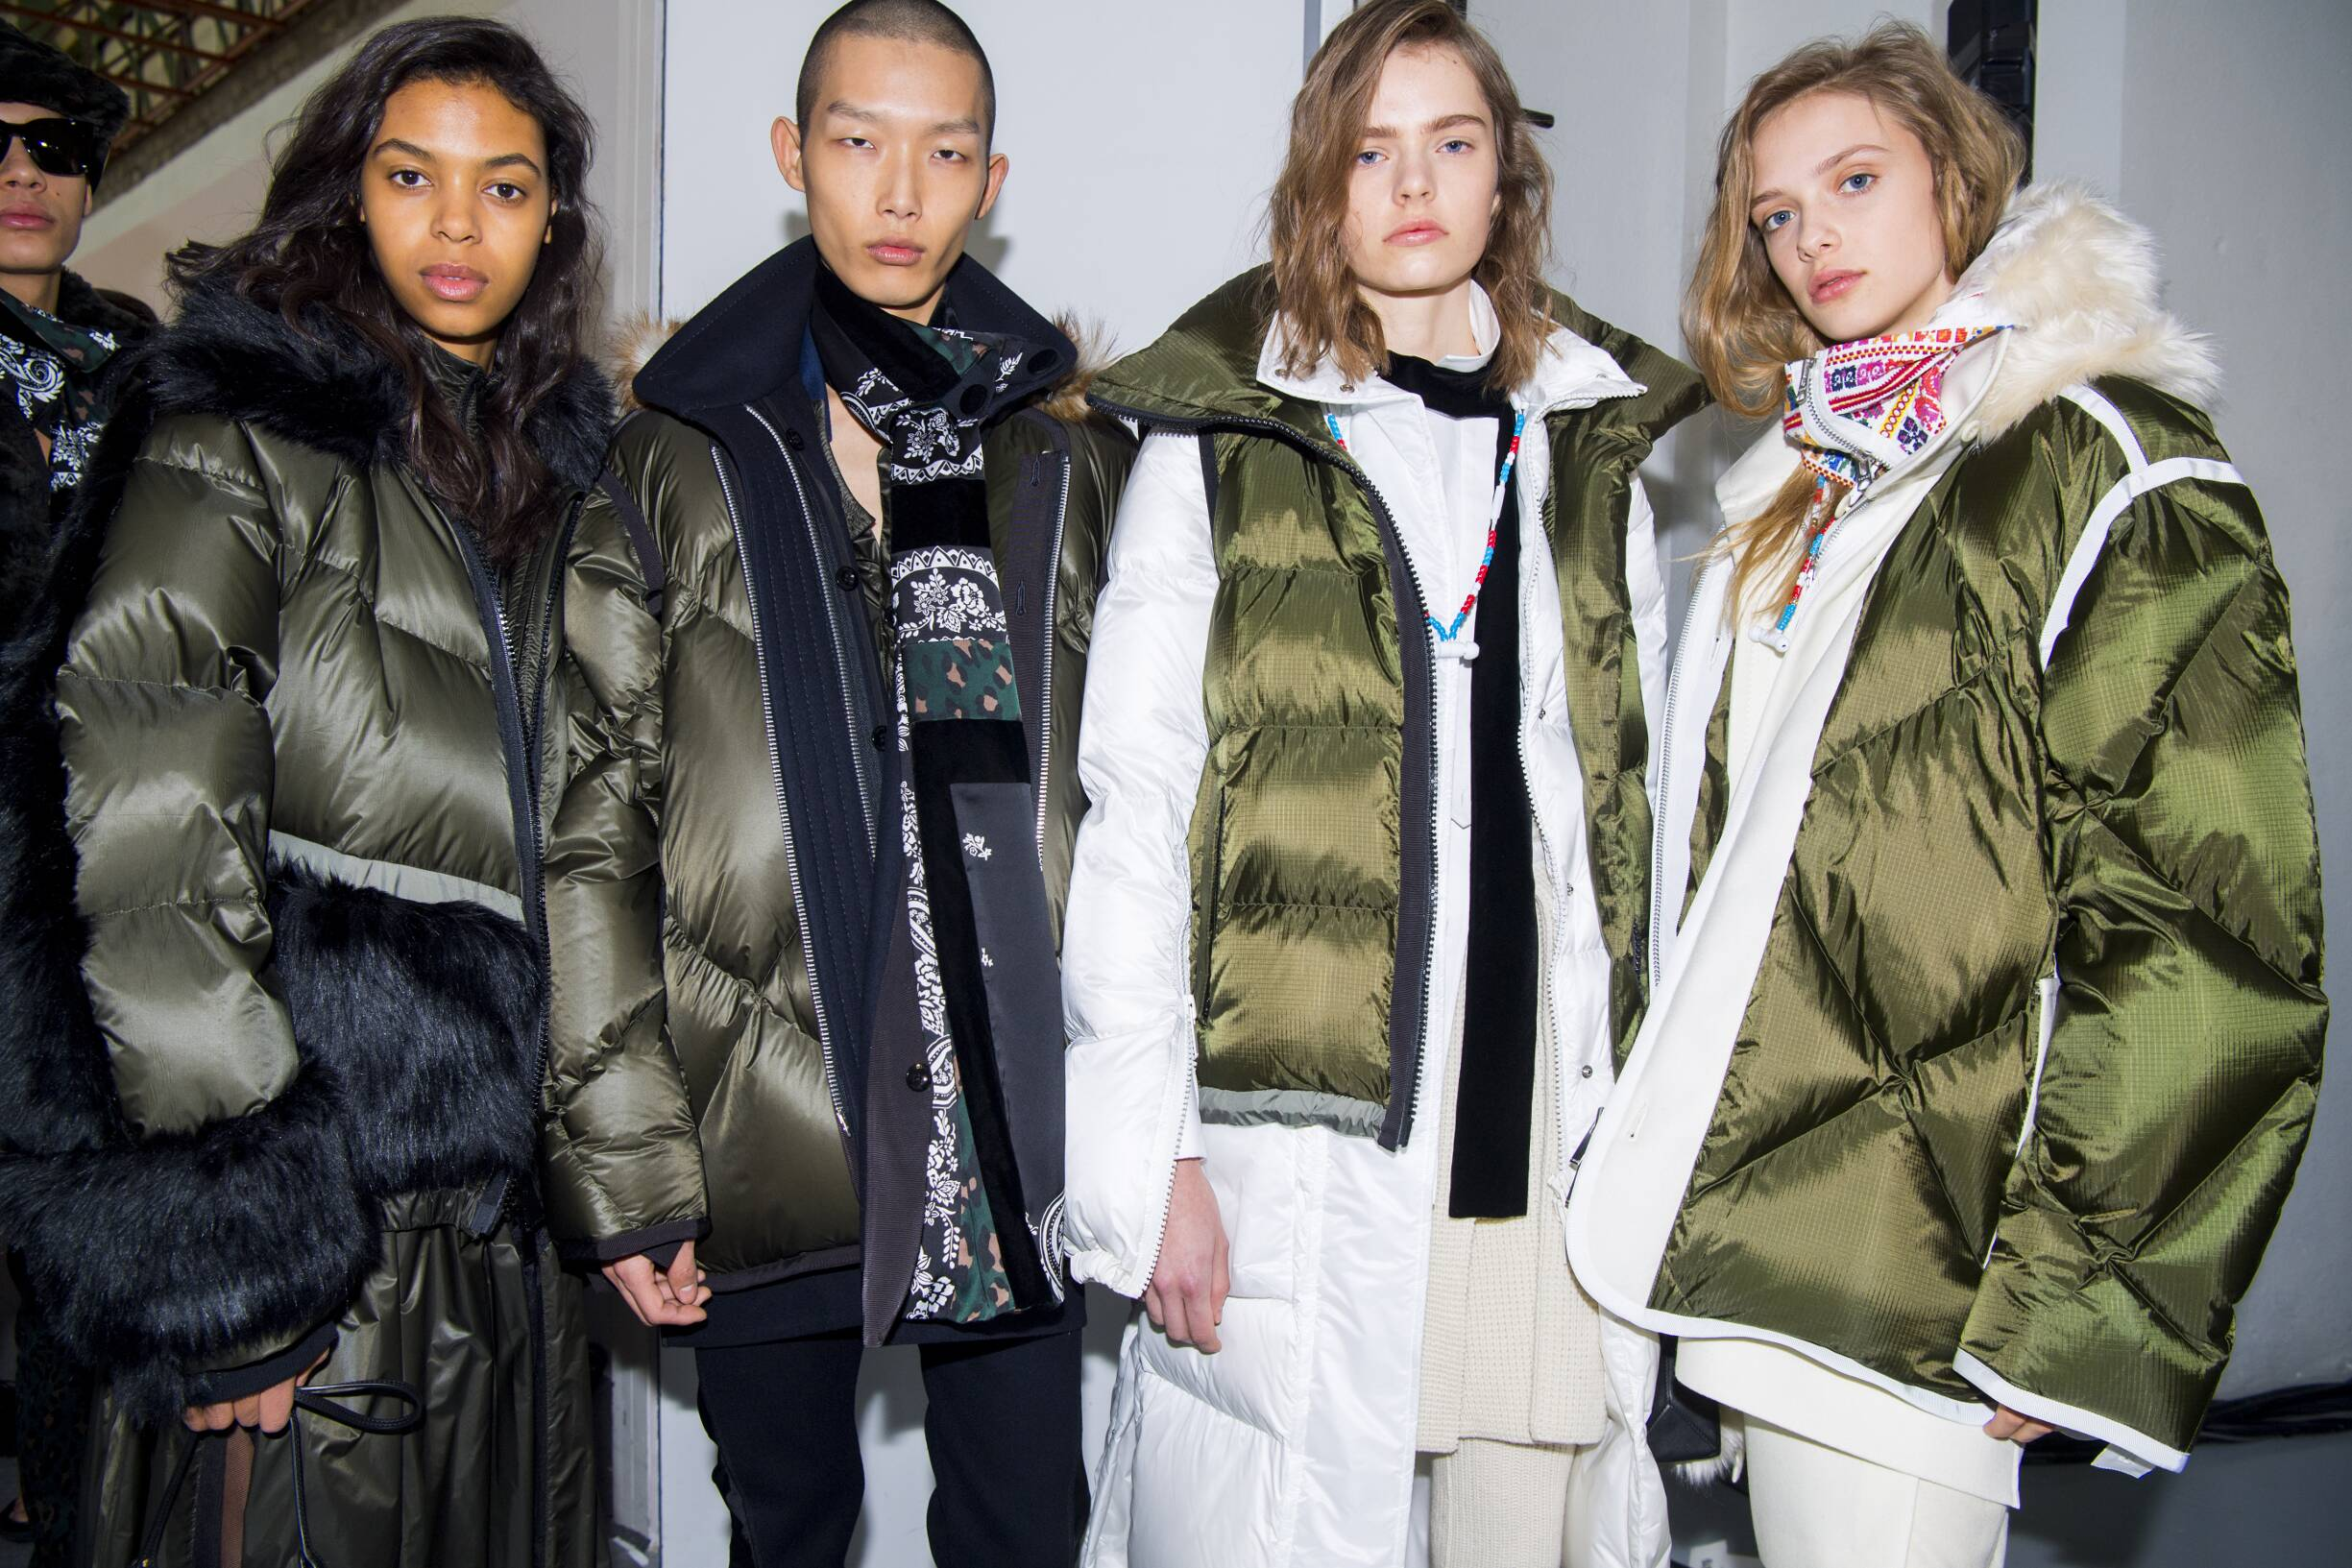 Models Fall Winter 2019 Backstage Sacai